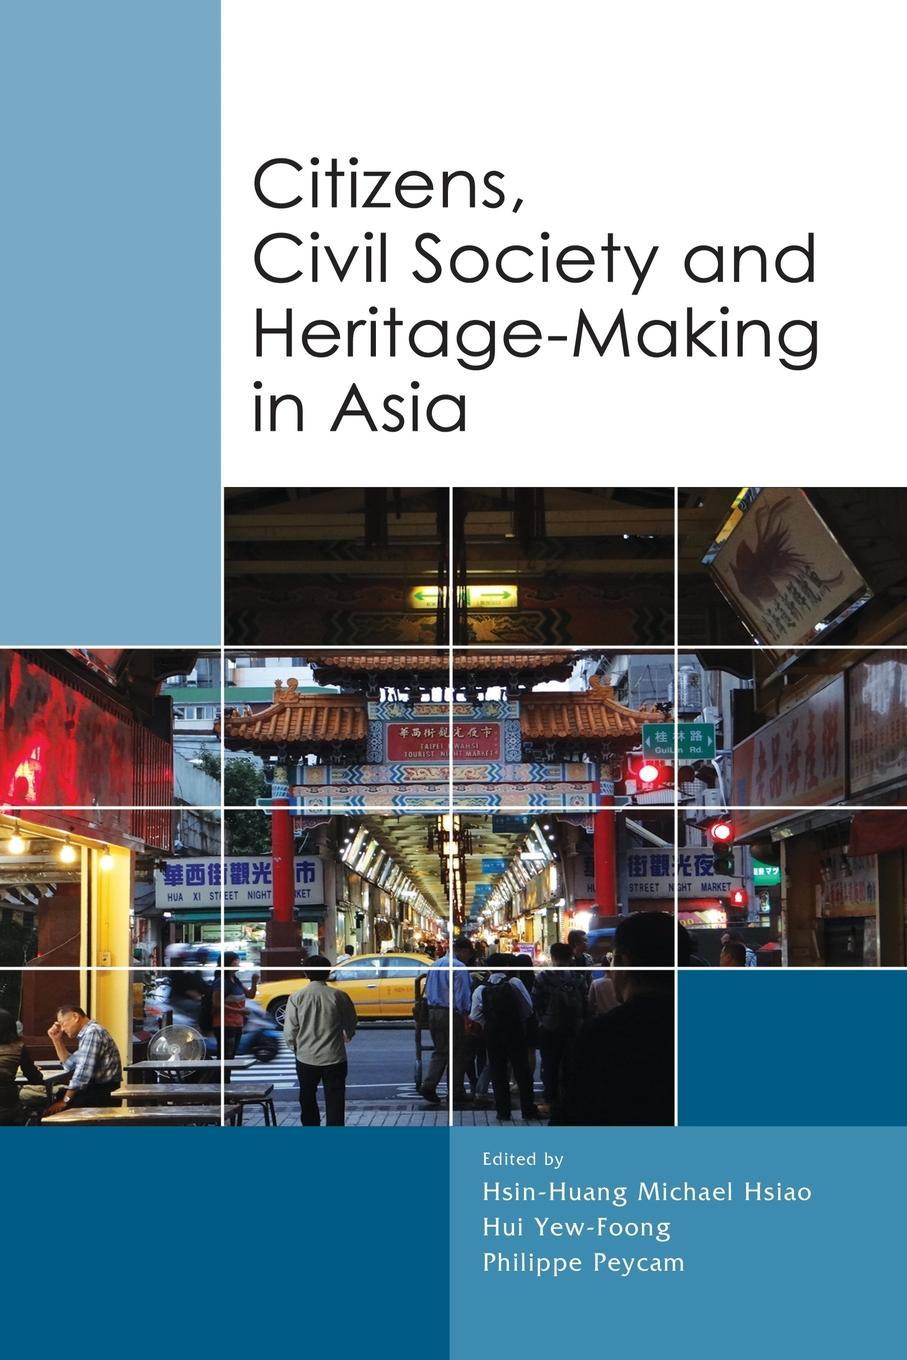 Citizens, Civil Society and Heritage-making in Asia colin crouch making capitalism fit for society